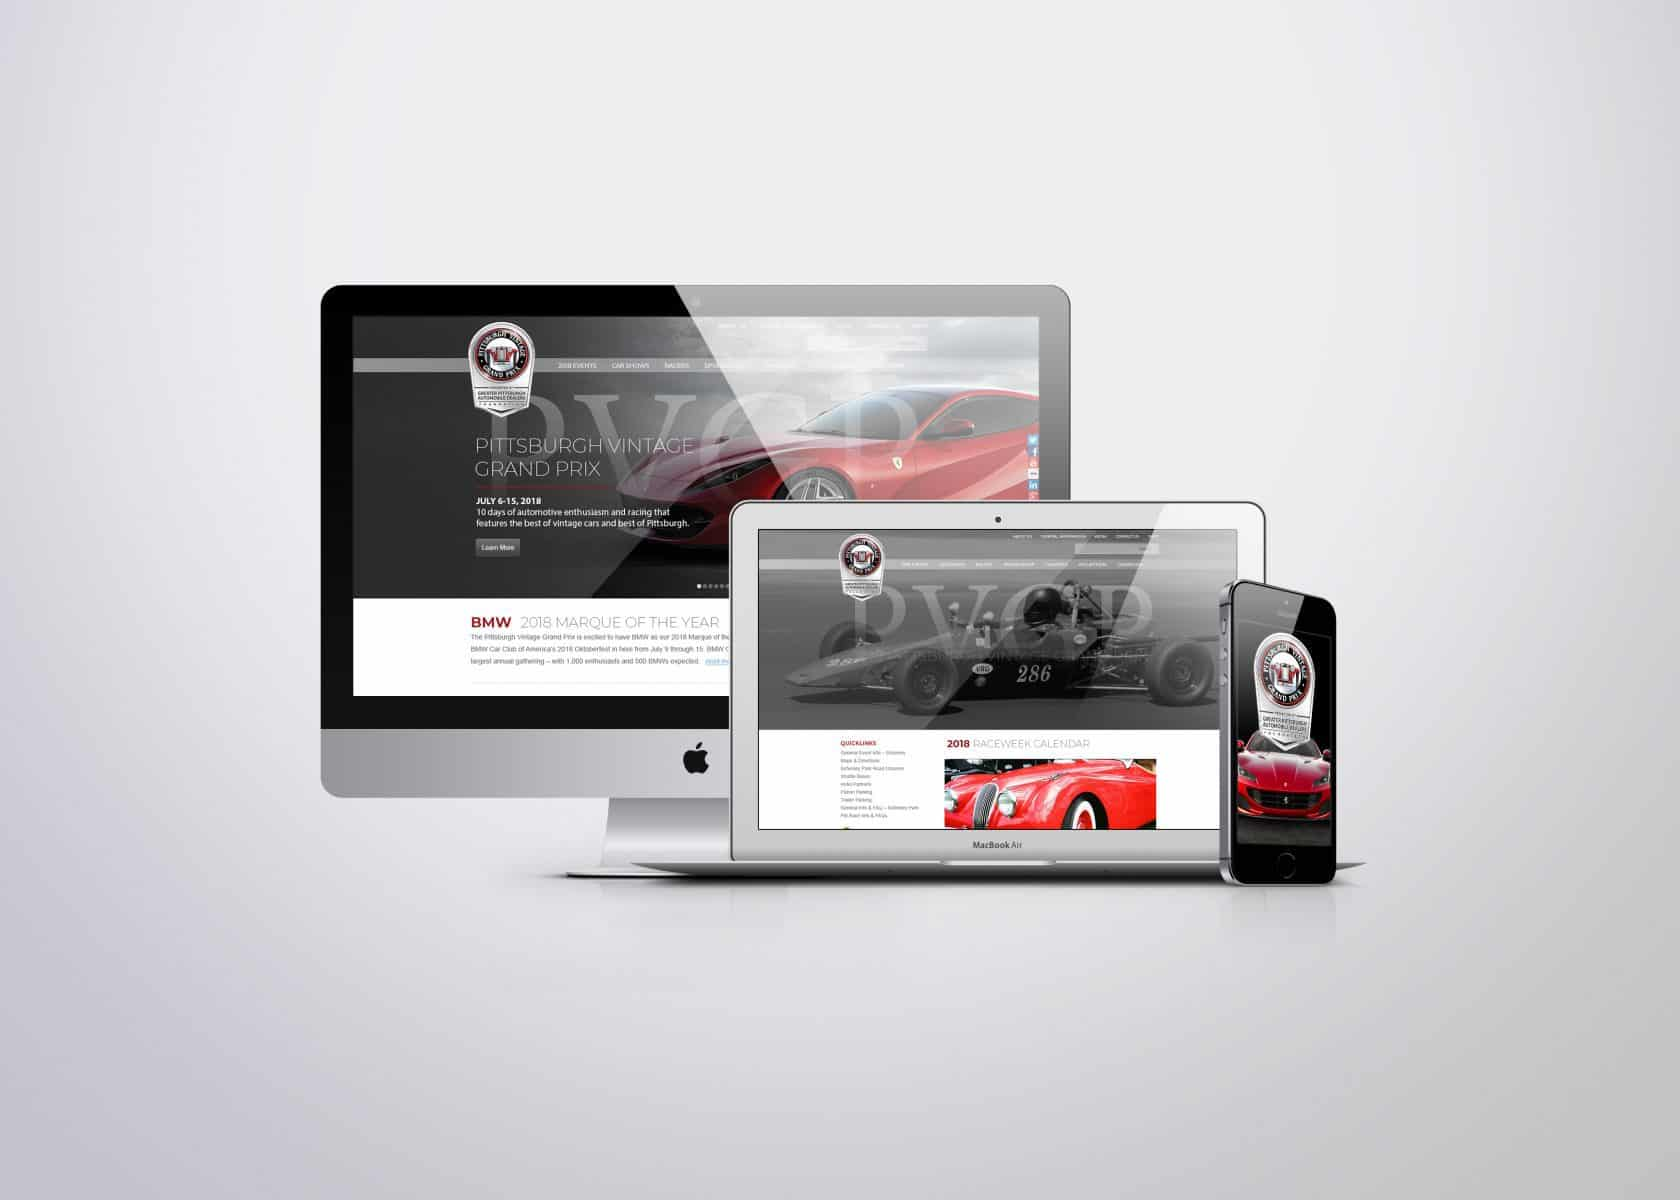 Website design for Pittsburgh Vintage Grand Prix provided by Pittsburgh Web Design Firm Drift2 Solutions